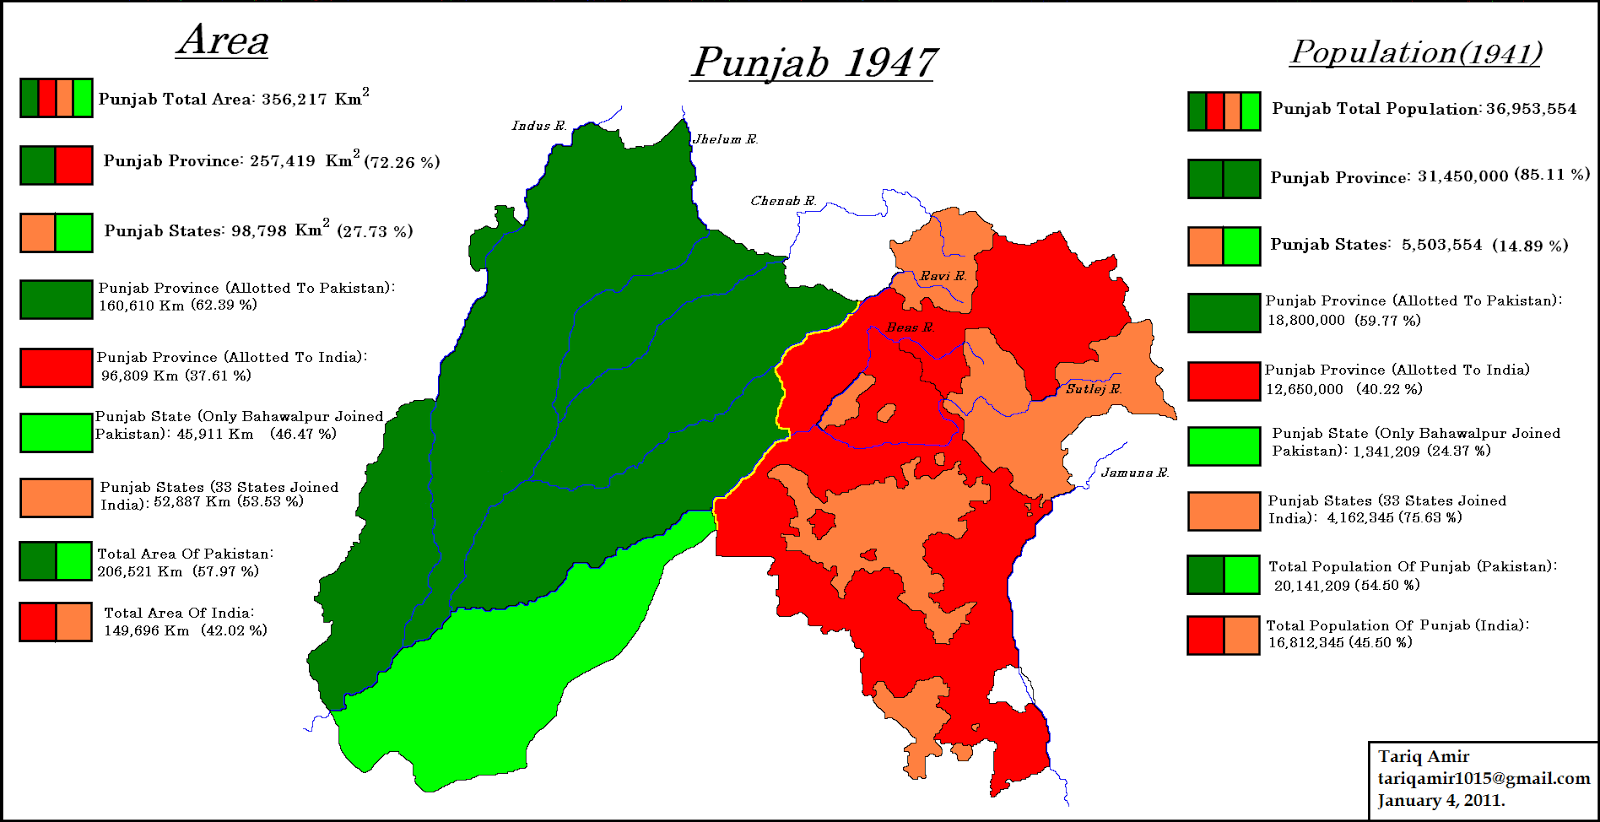 Pakistan Geotagging: Partition Of Punjab in 1947